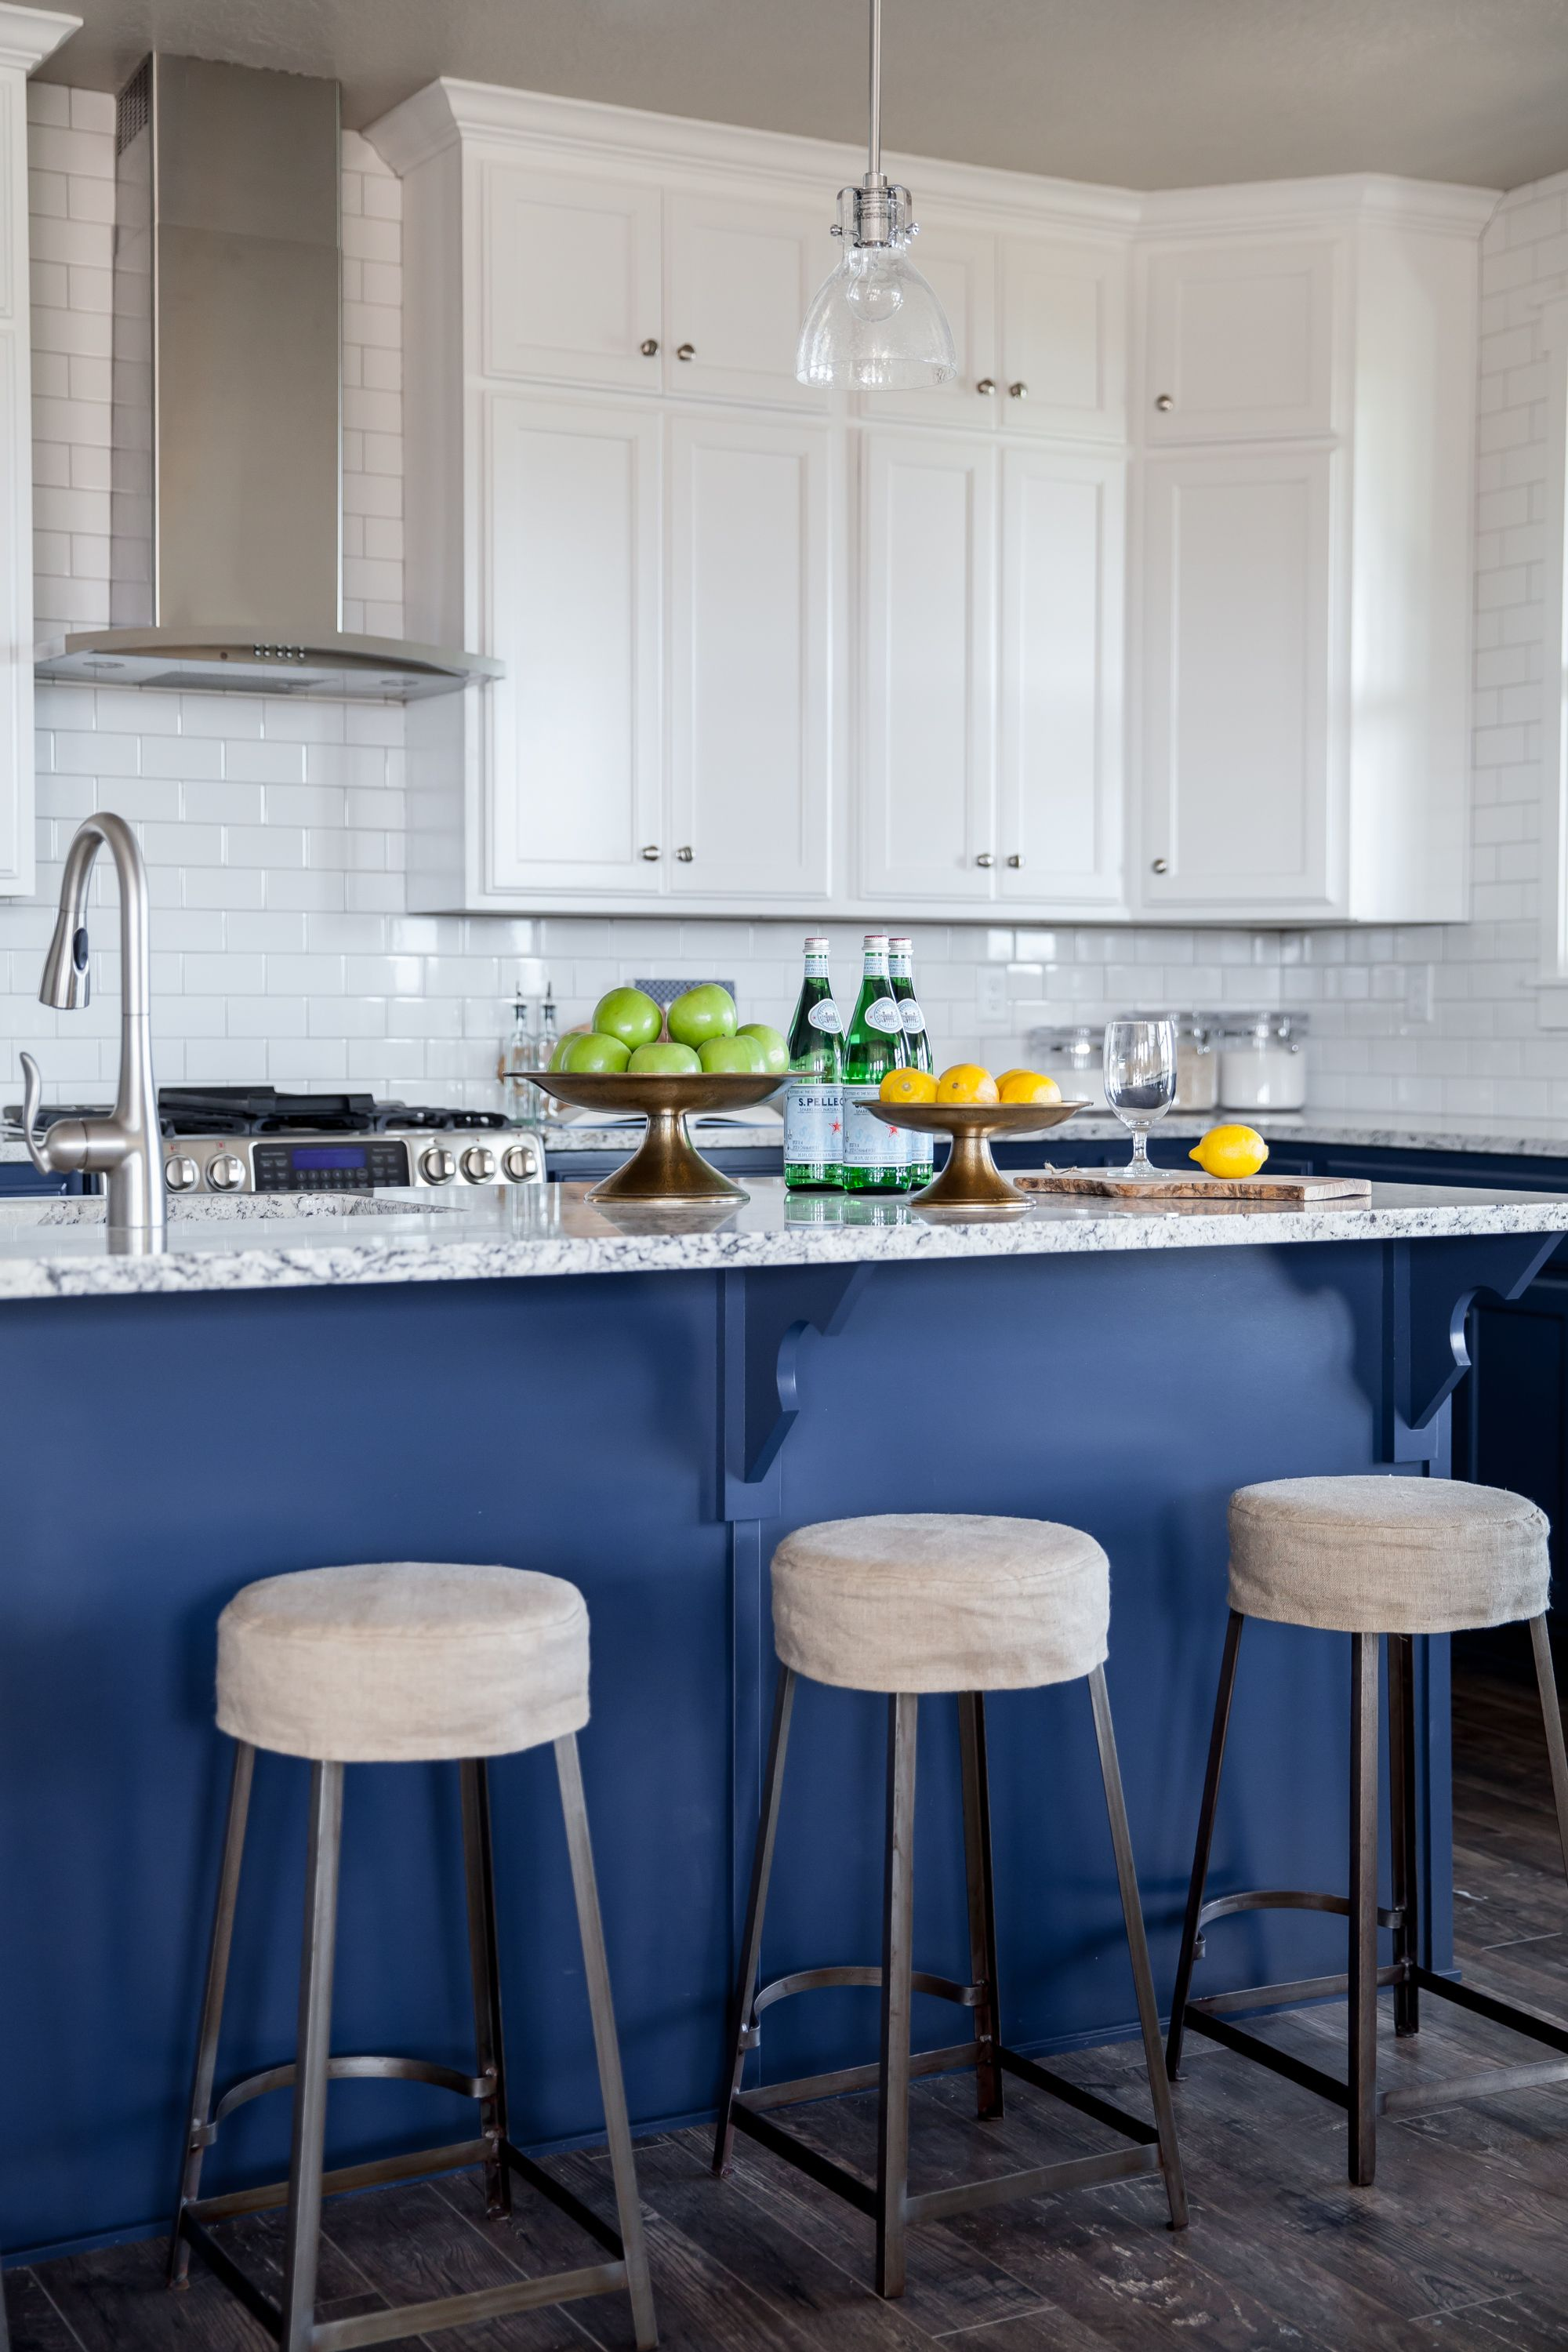 White Subway Tile An Indigo Blue Kitchen Island Cabinets And Industrial Stools In Alice Lanes Daybreak Lake Loft